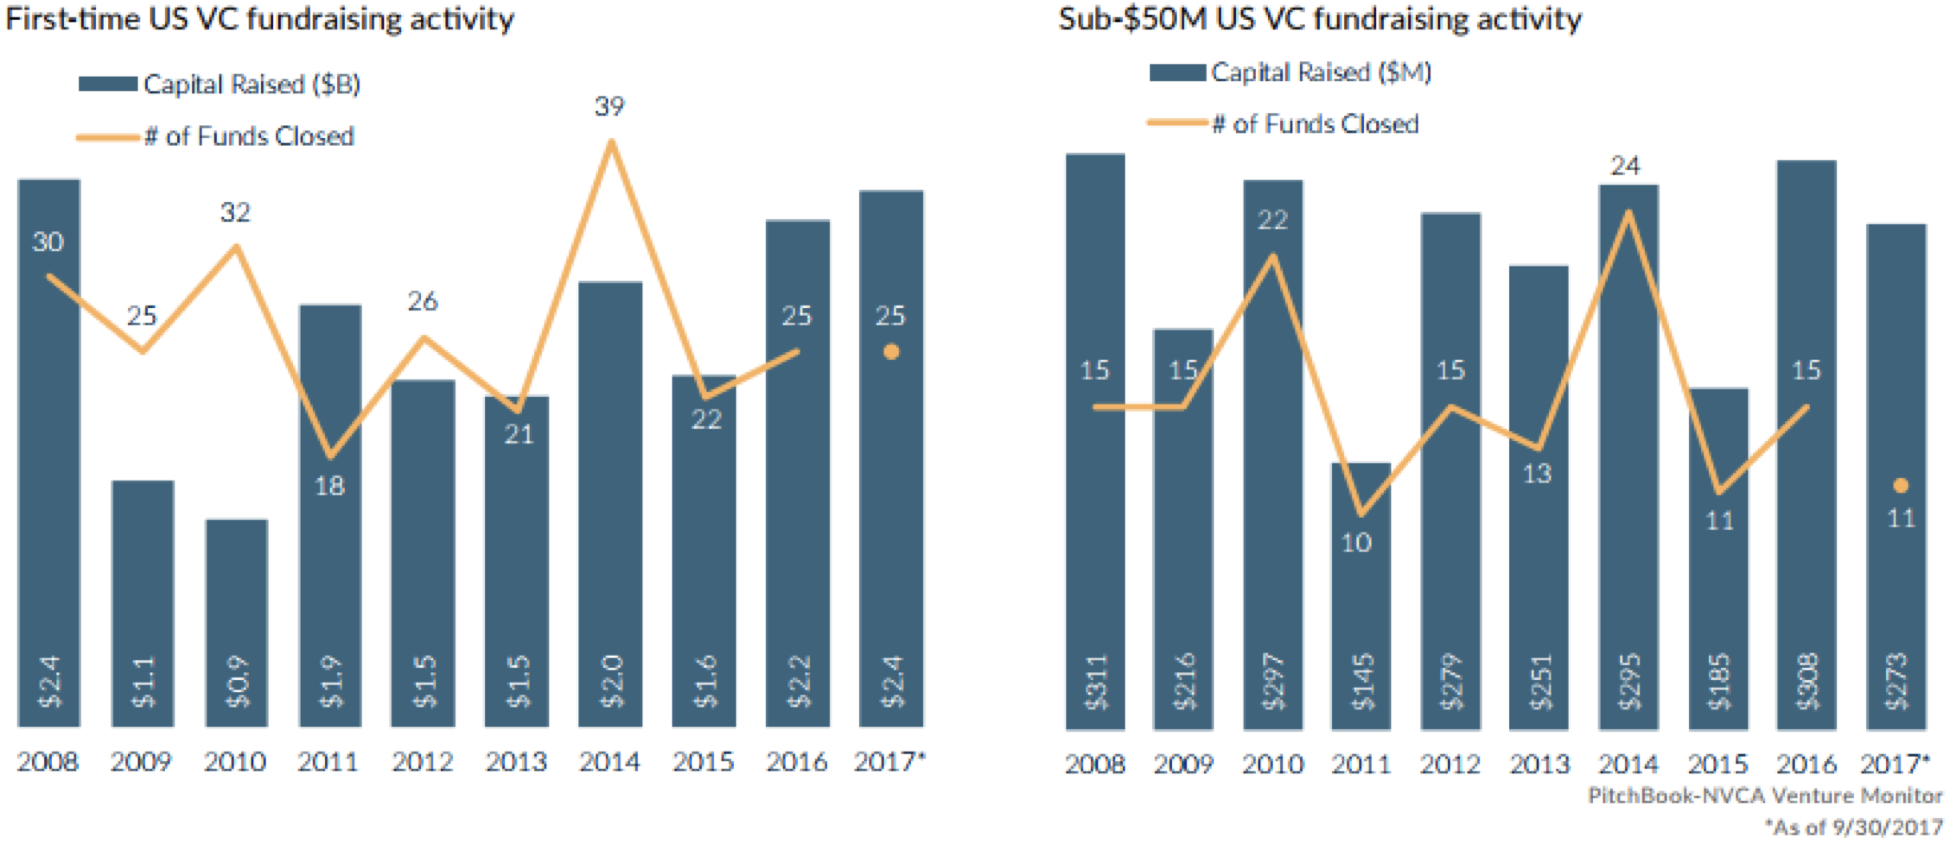 What Do You Need to Know About Early Stage VC Funds?